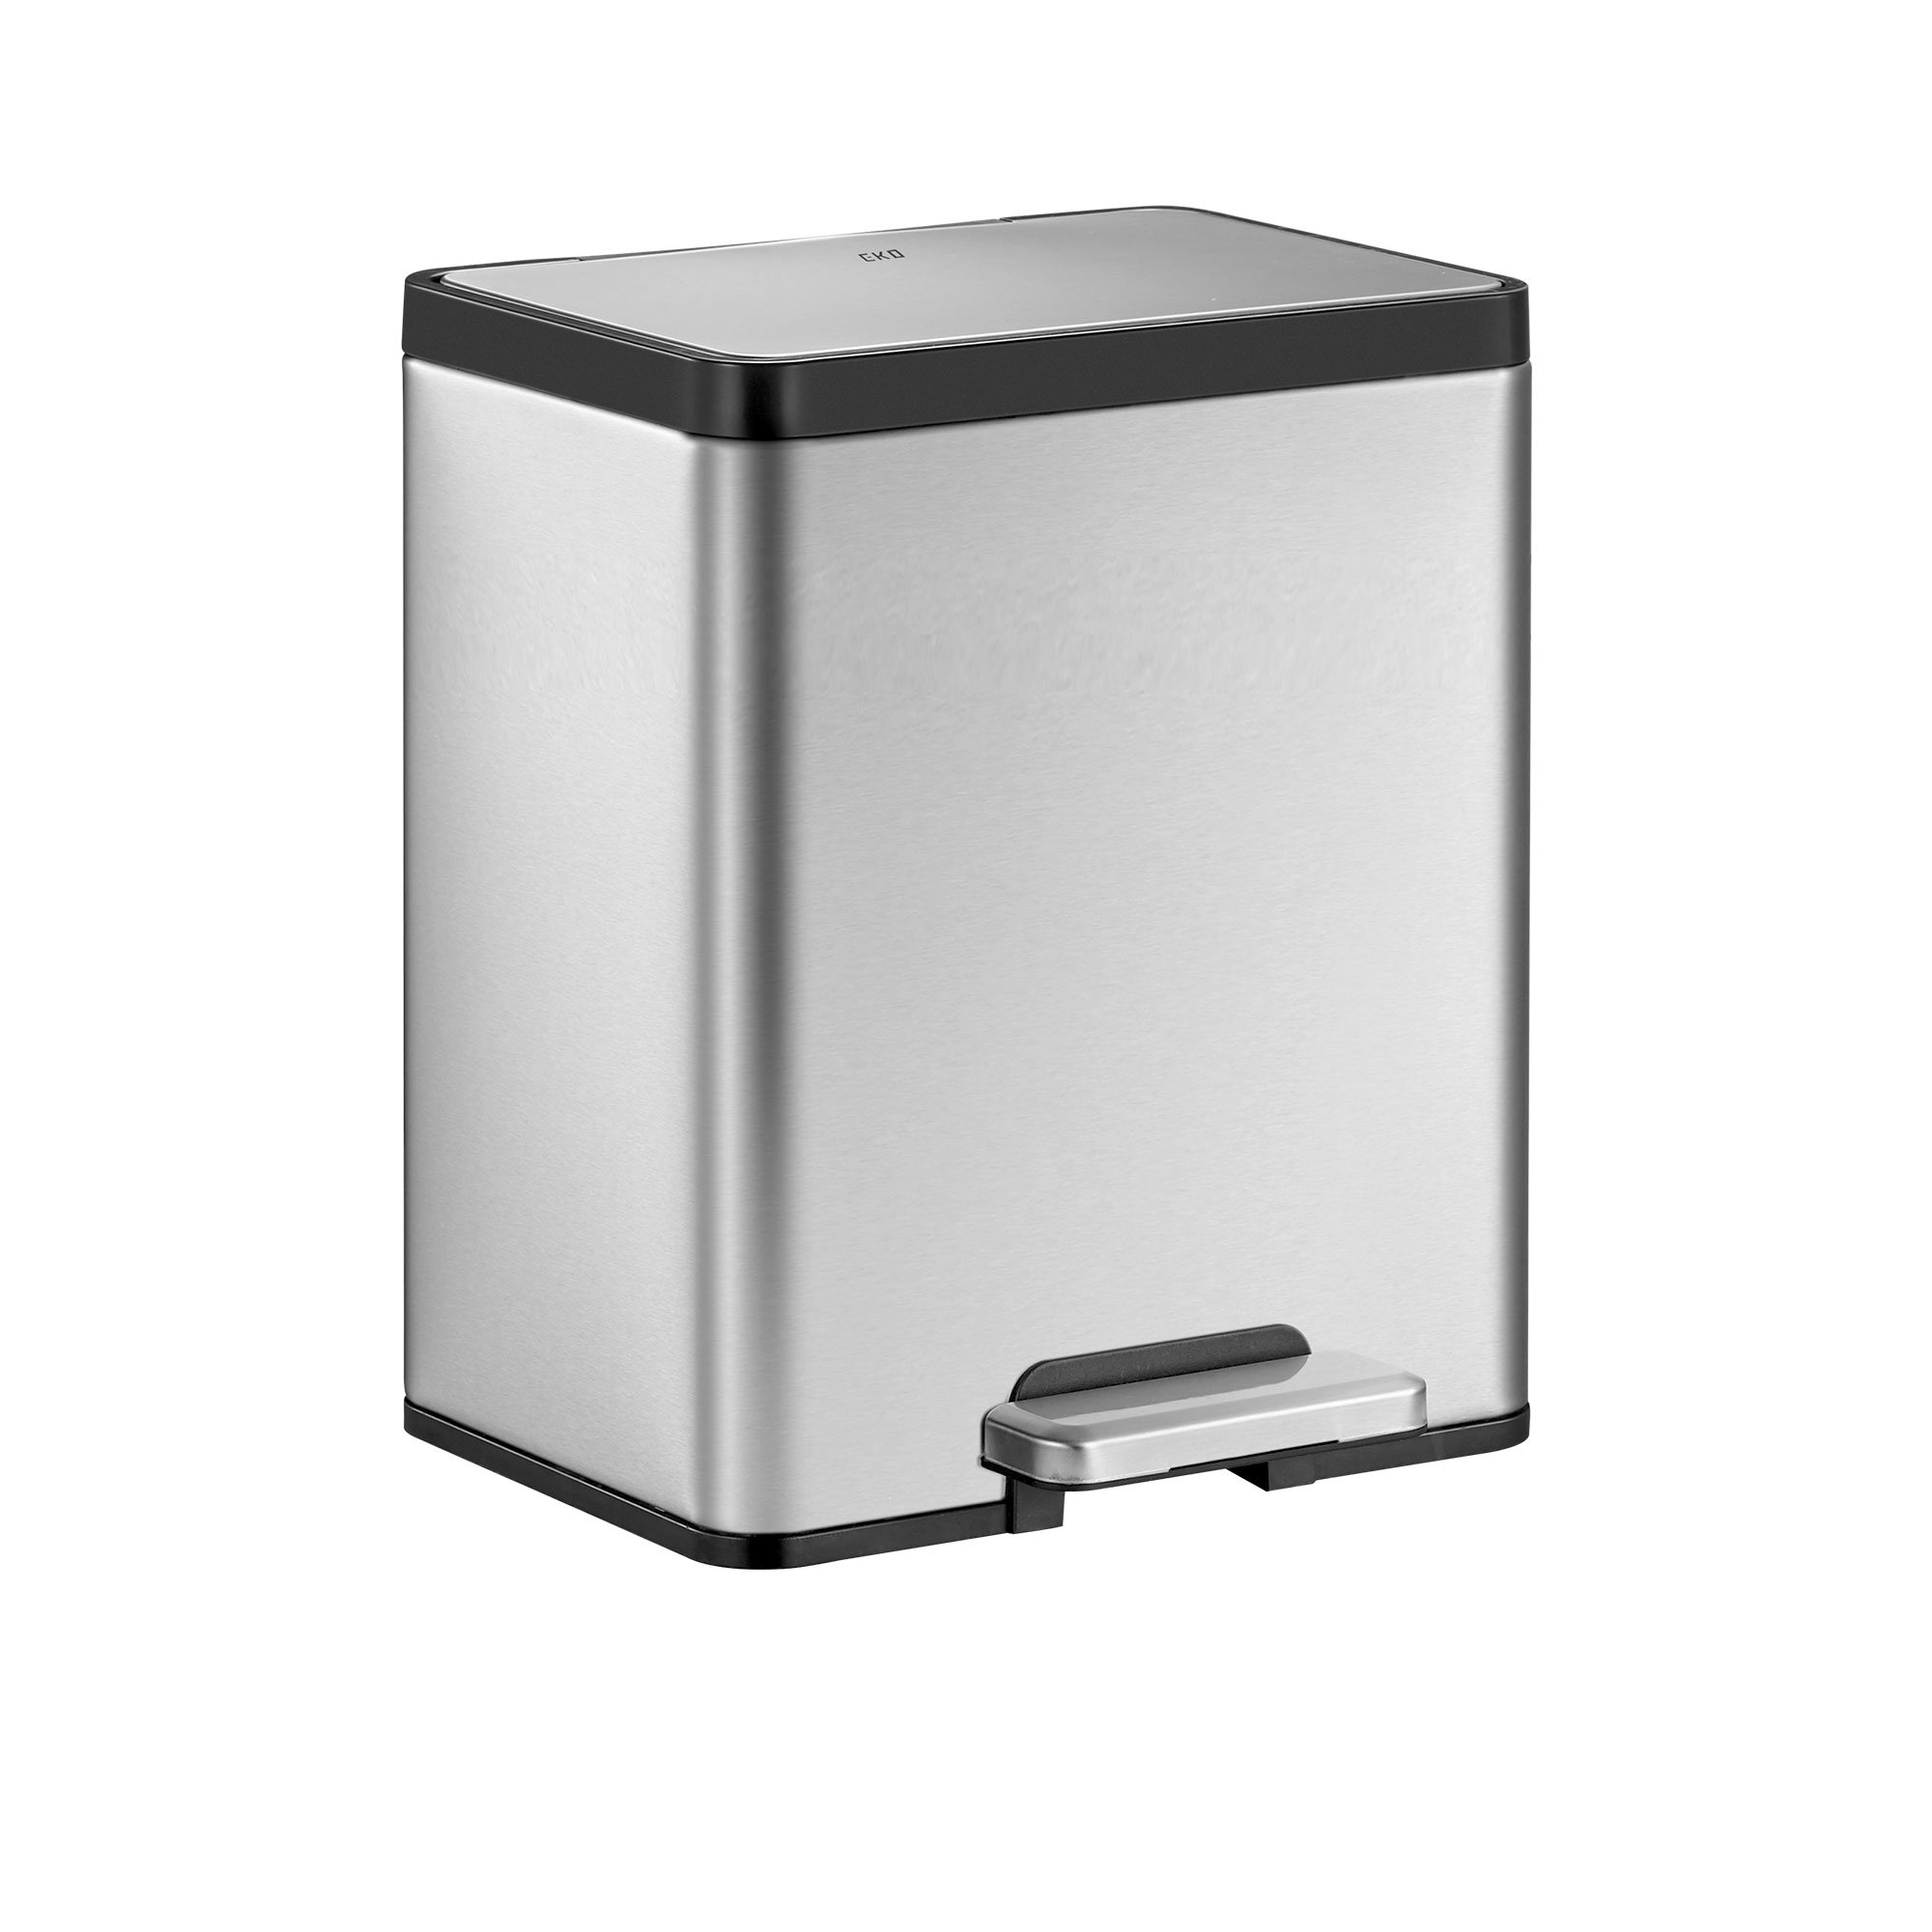 EKO Ecocasa II Step Can 20L Stainless Steel